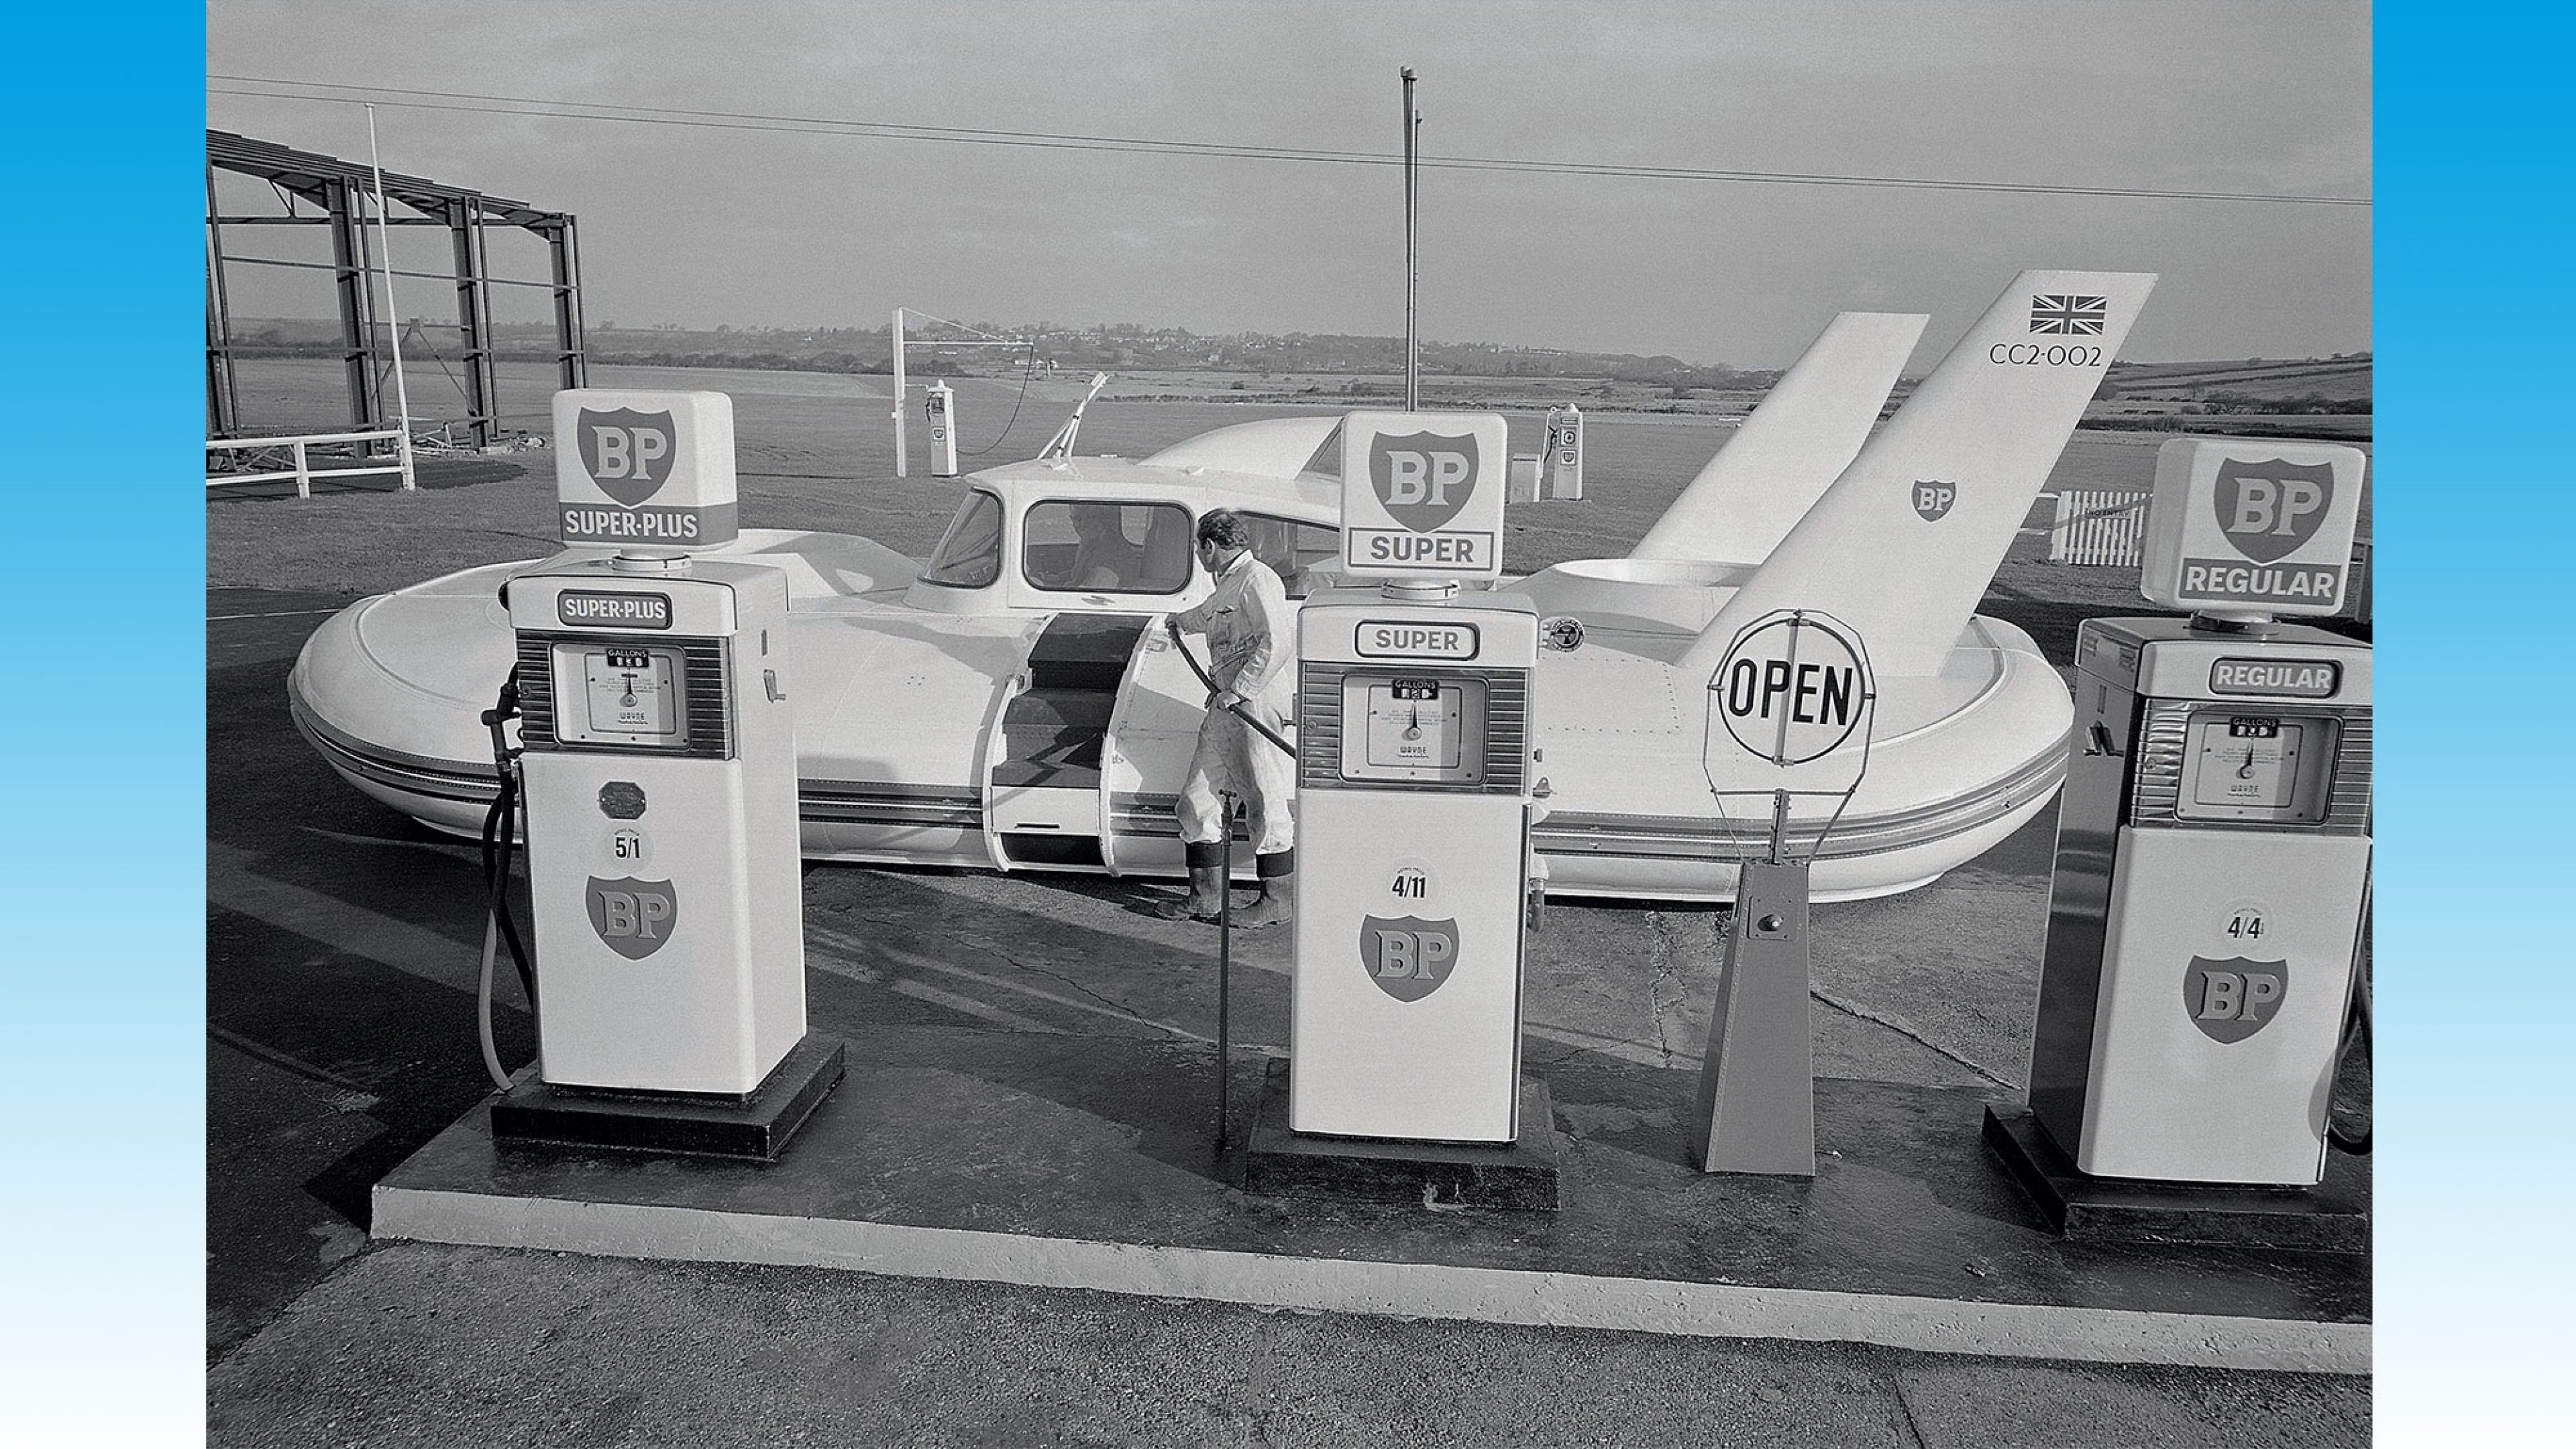 Refuelling the amphibious Britten-Norman Cushioncraft at a BP service station at Bembridge, Isle of Wight, 1963